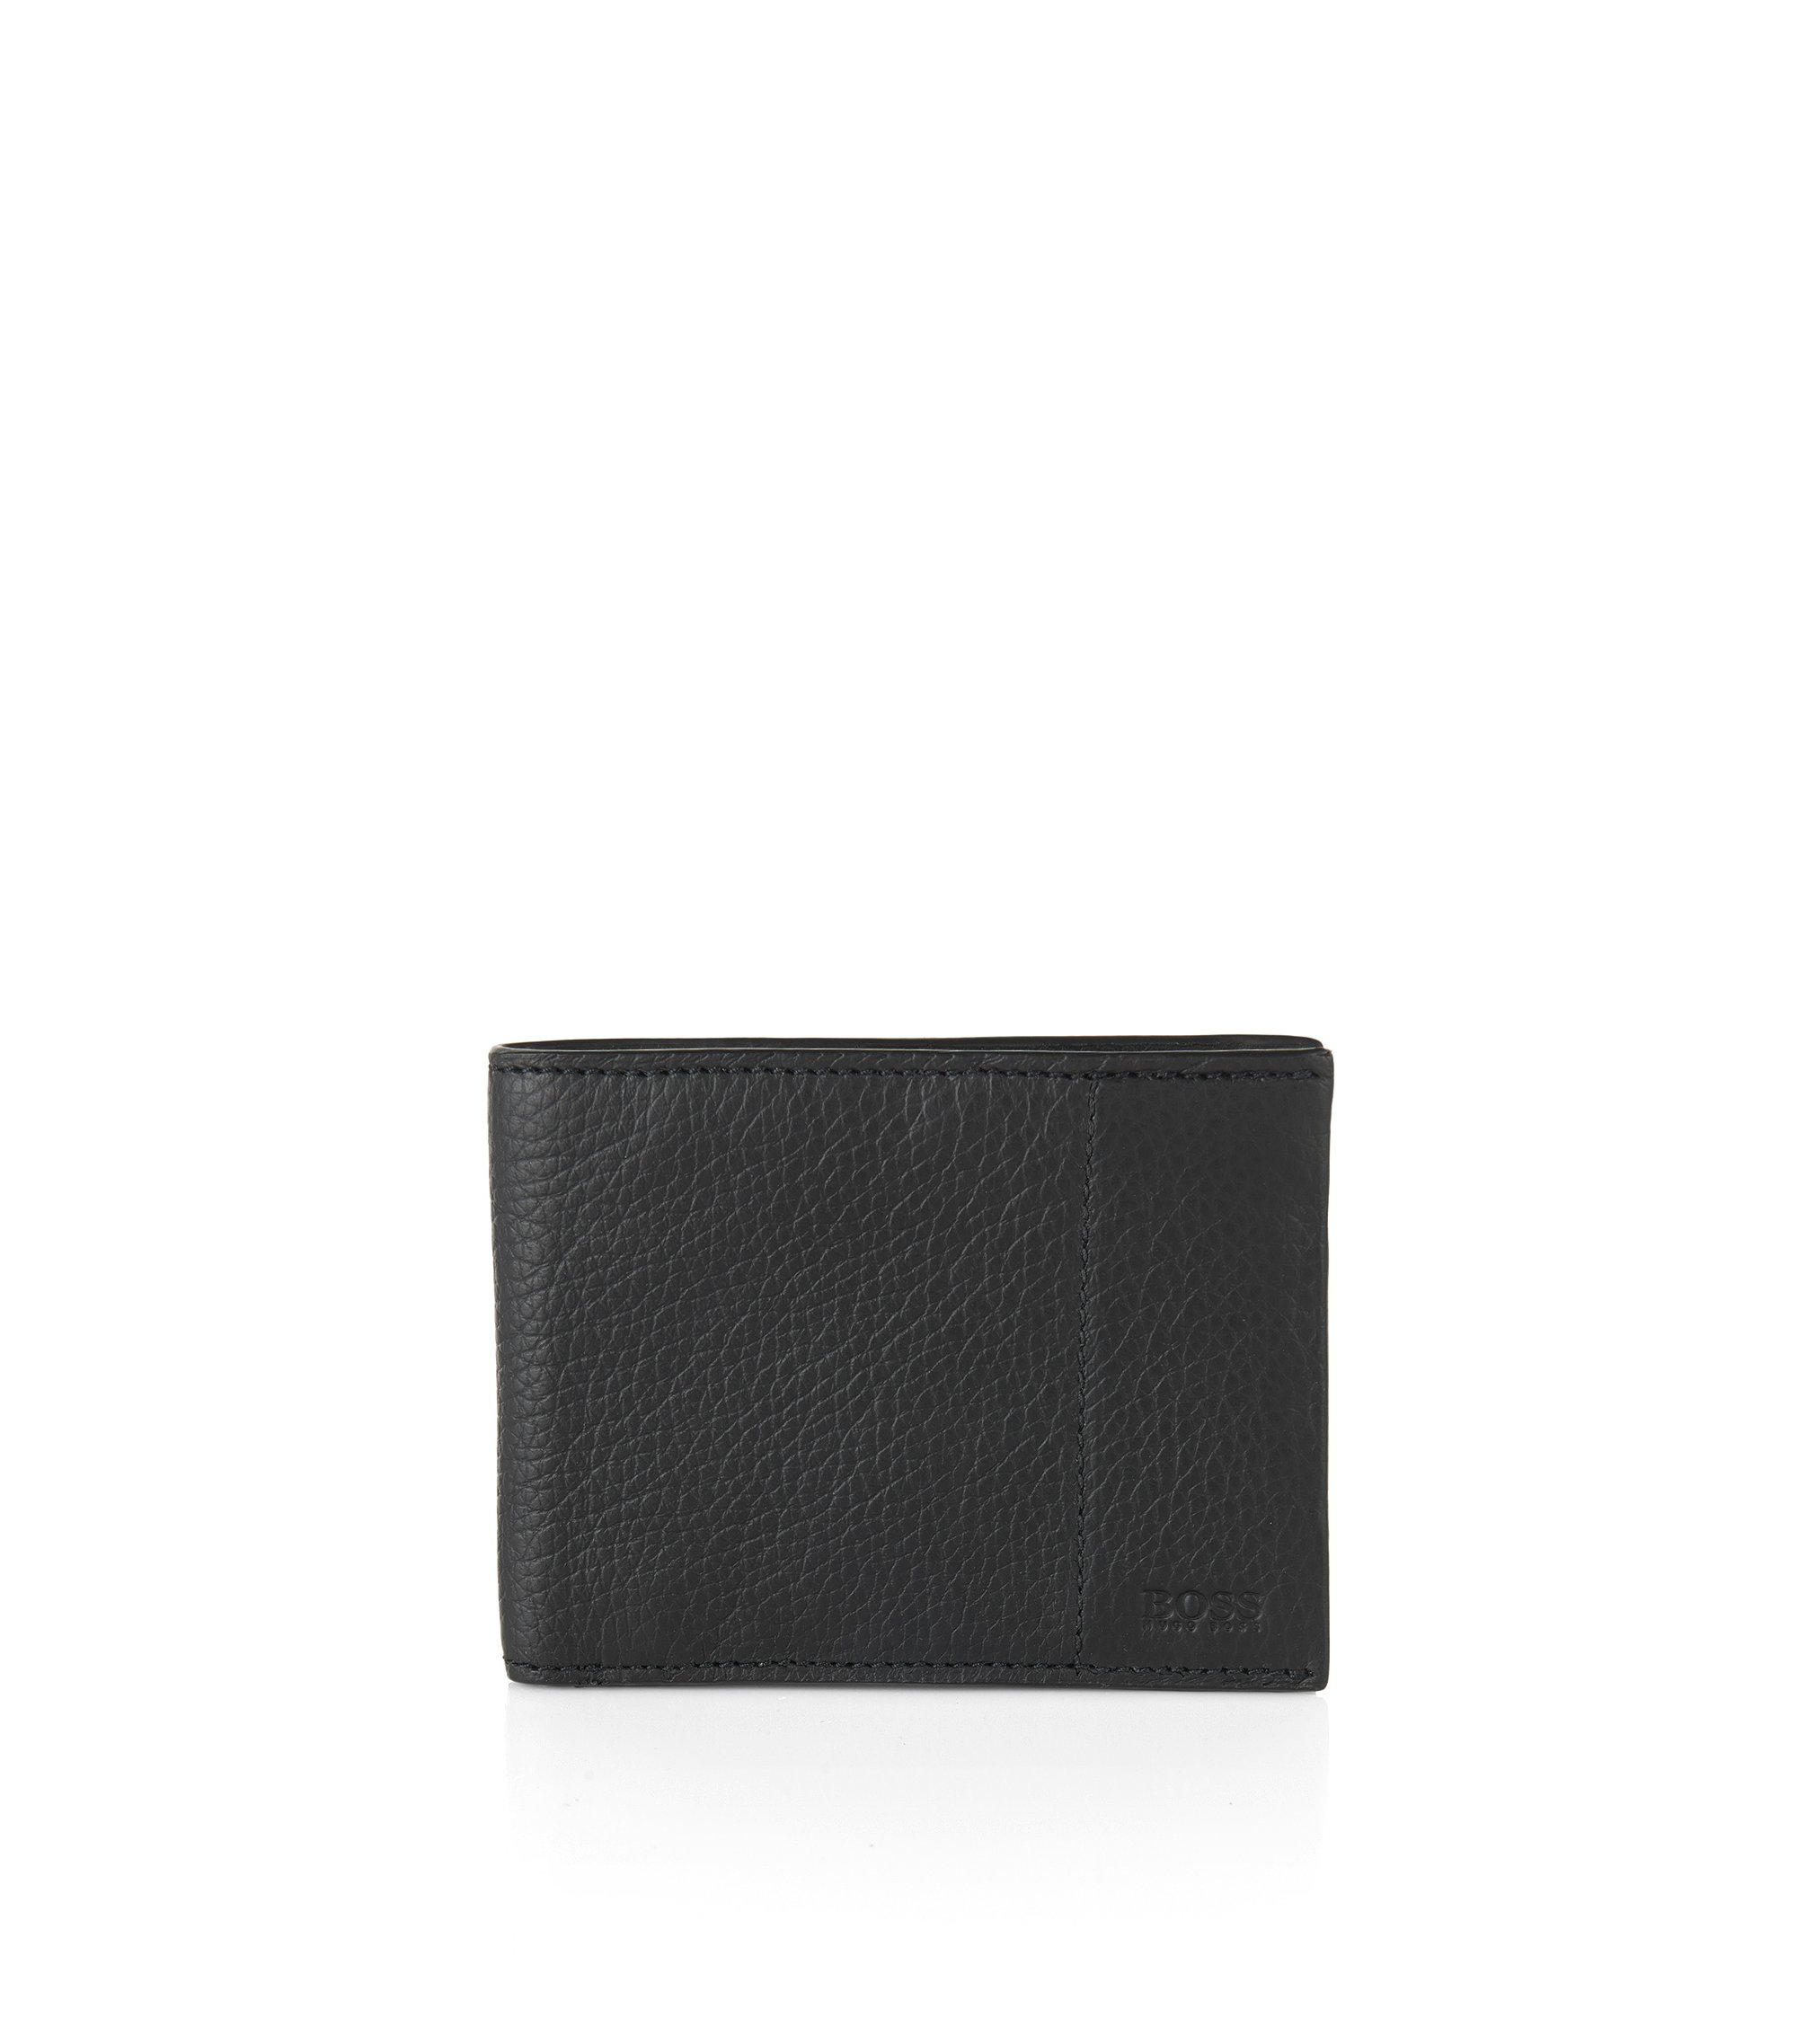 Leather Billfold Wallet | Traveller 6 CC, Black